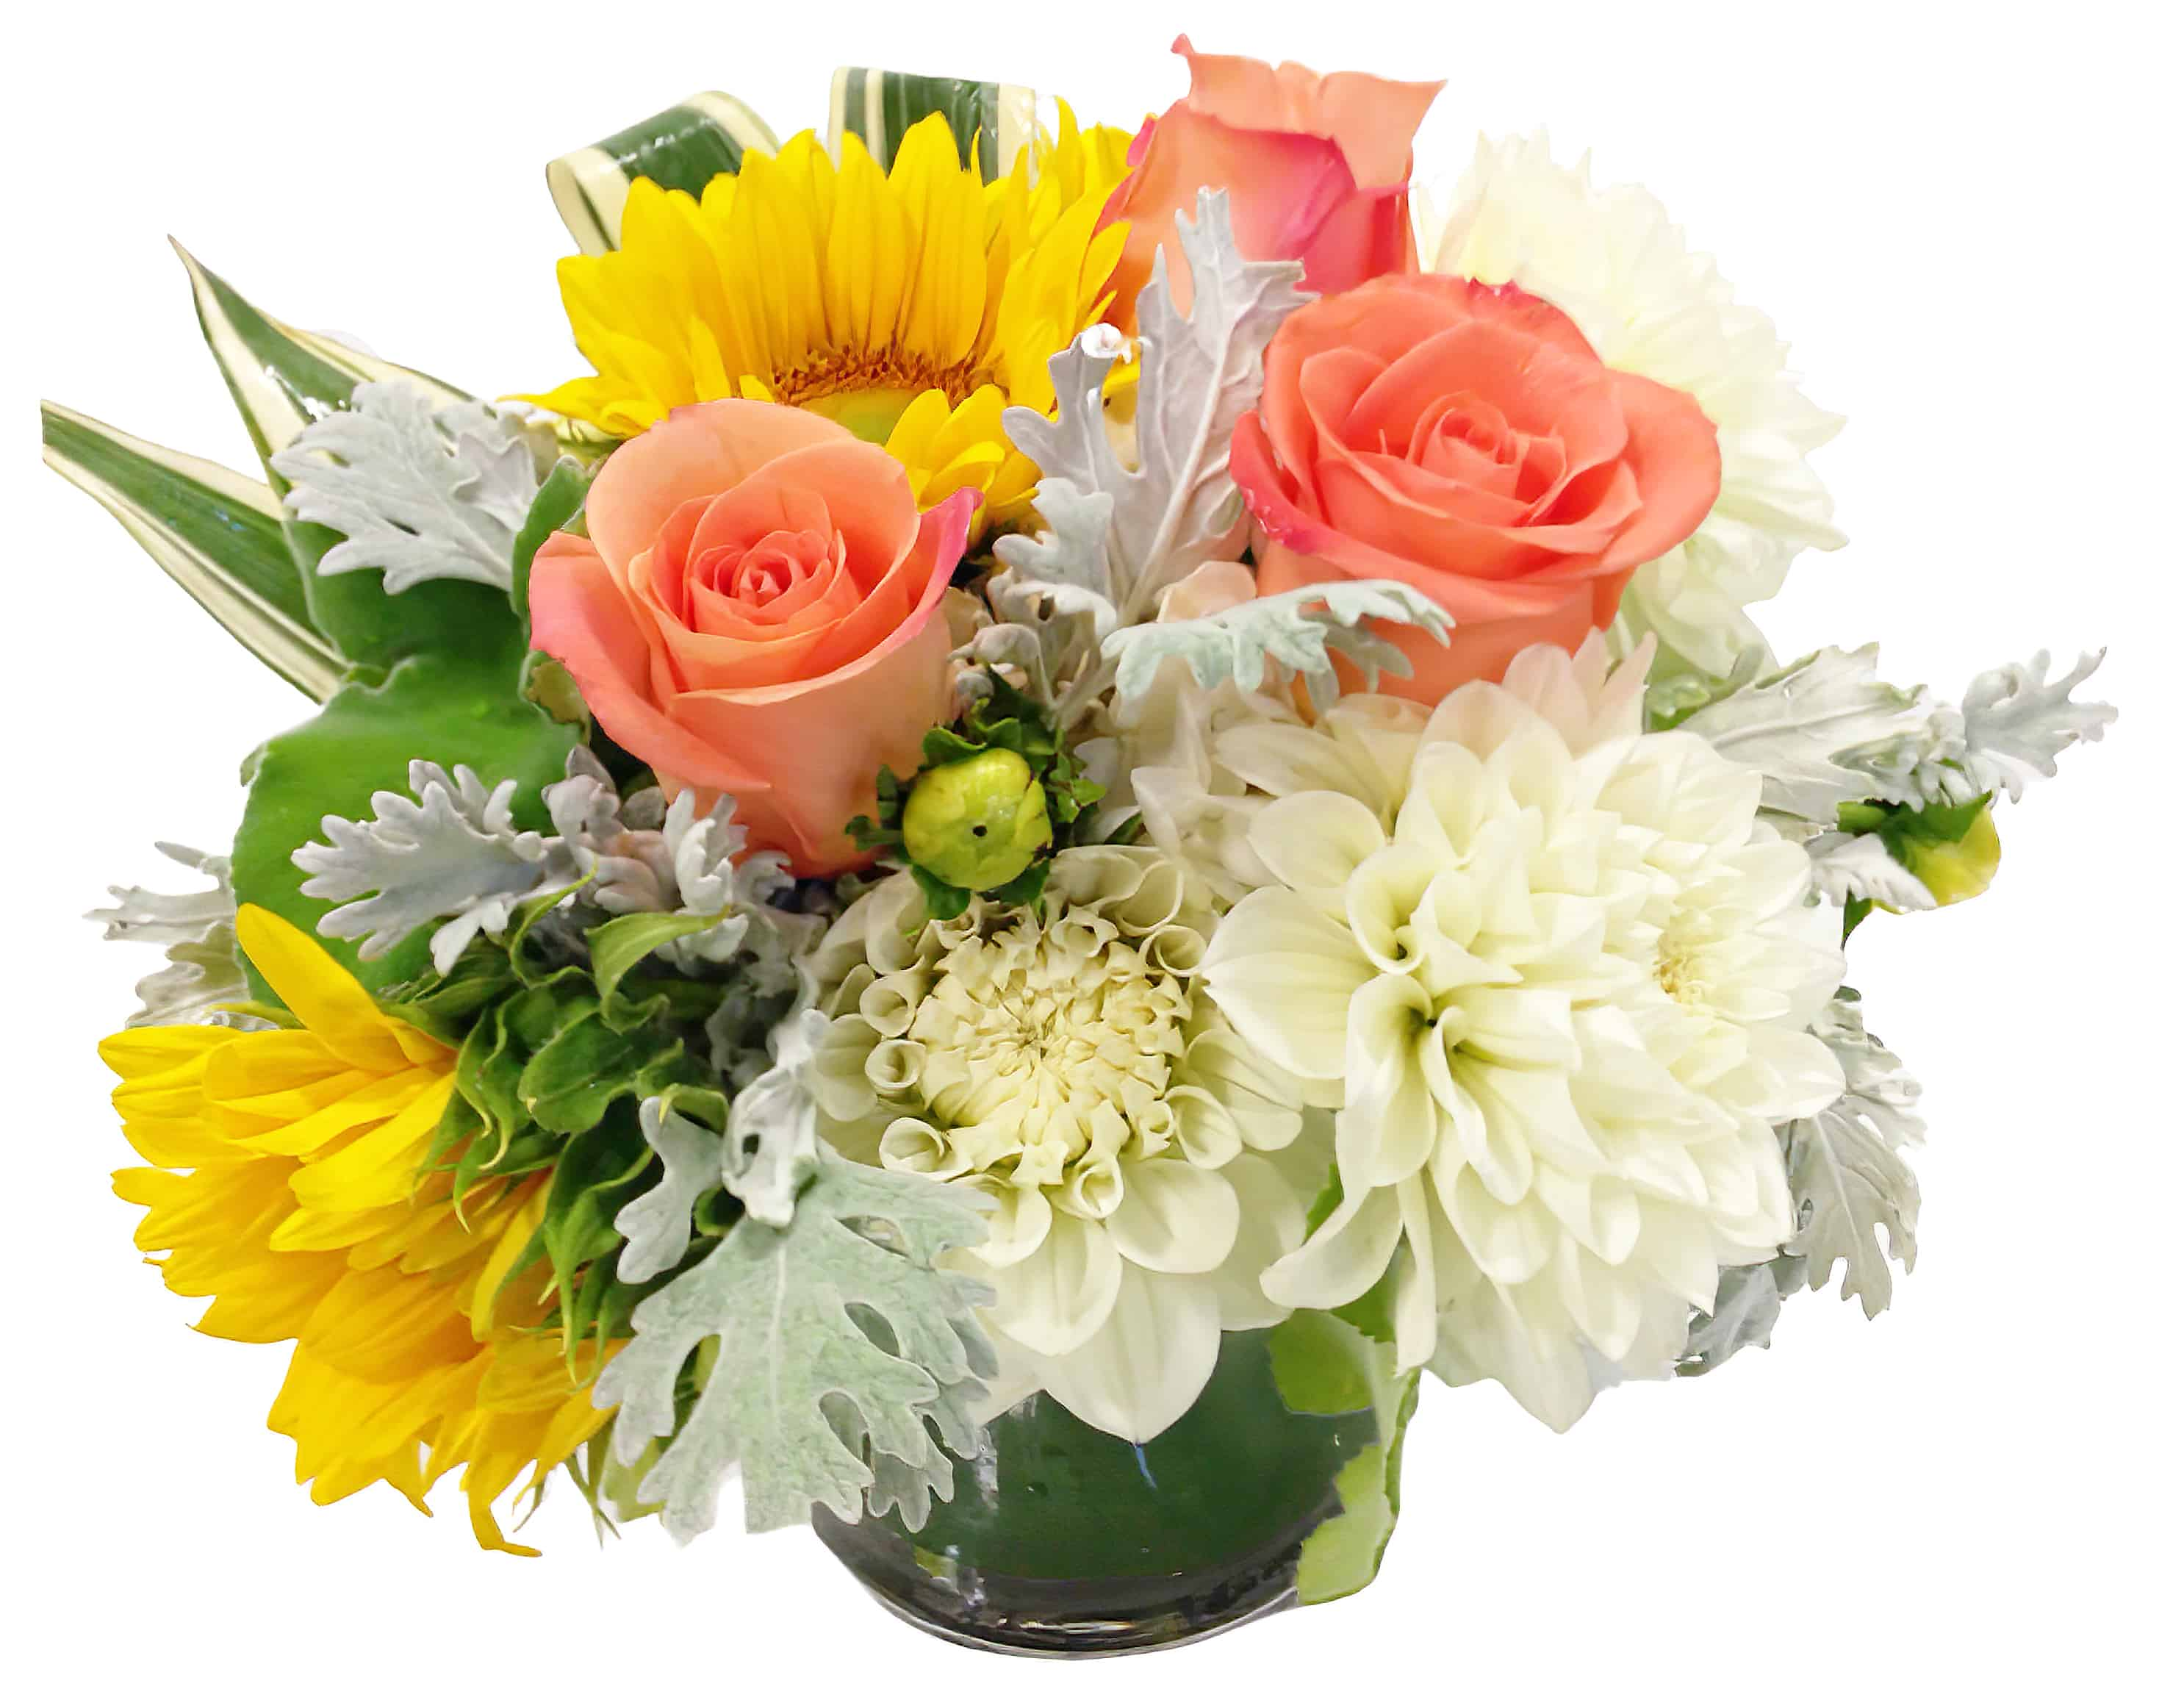 Duomo Sunset Flower Arrangement | San Francisco Florist Since 1871 Free Bay Area and San Francisco Flower Delivery